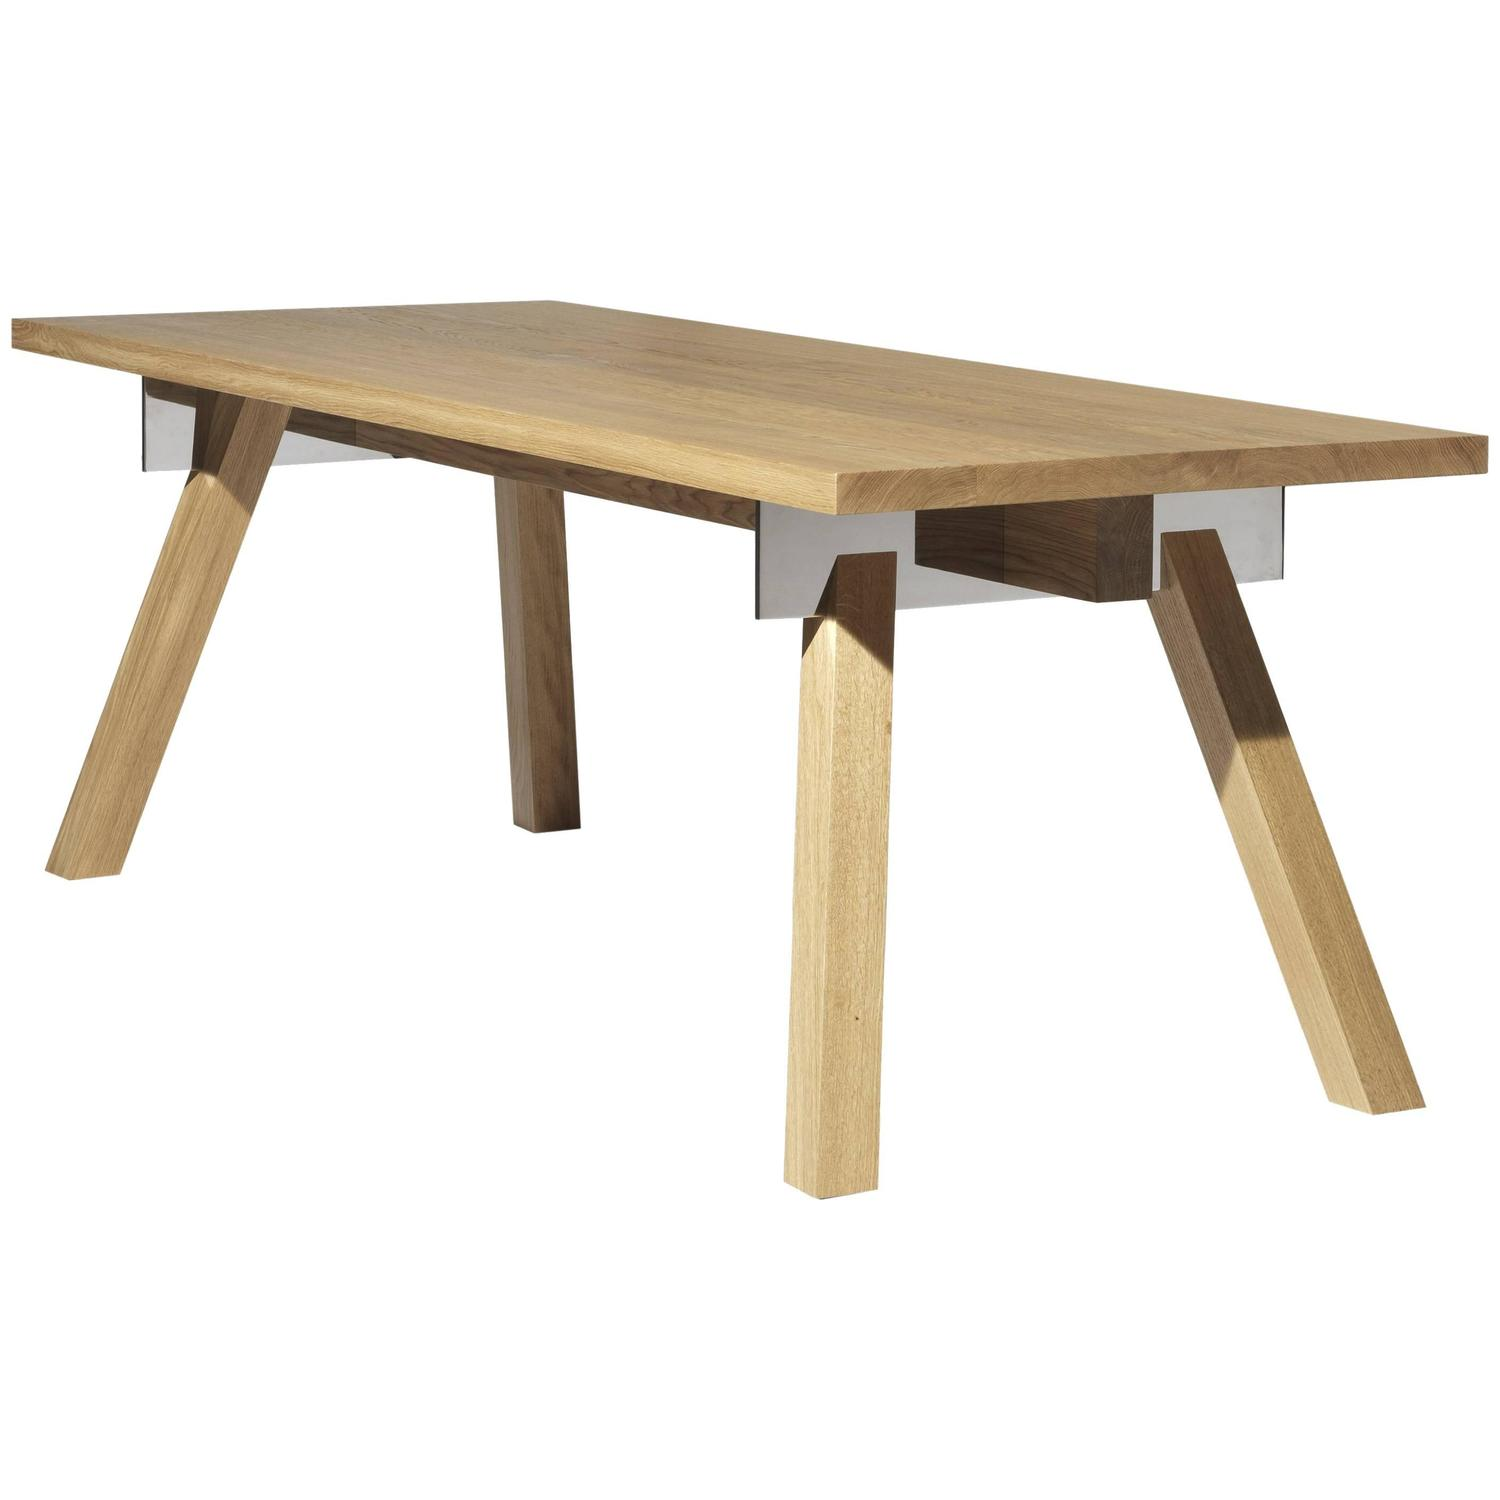 U0026quot;Torquemadau0026quot; Table In Brushed Oak Designed By Philippe Starck ...